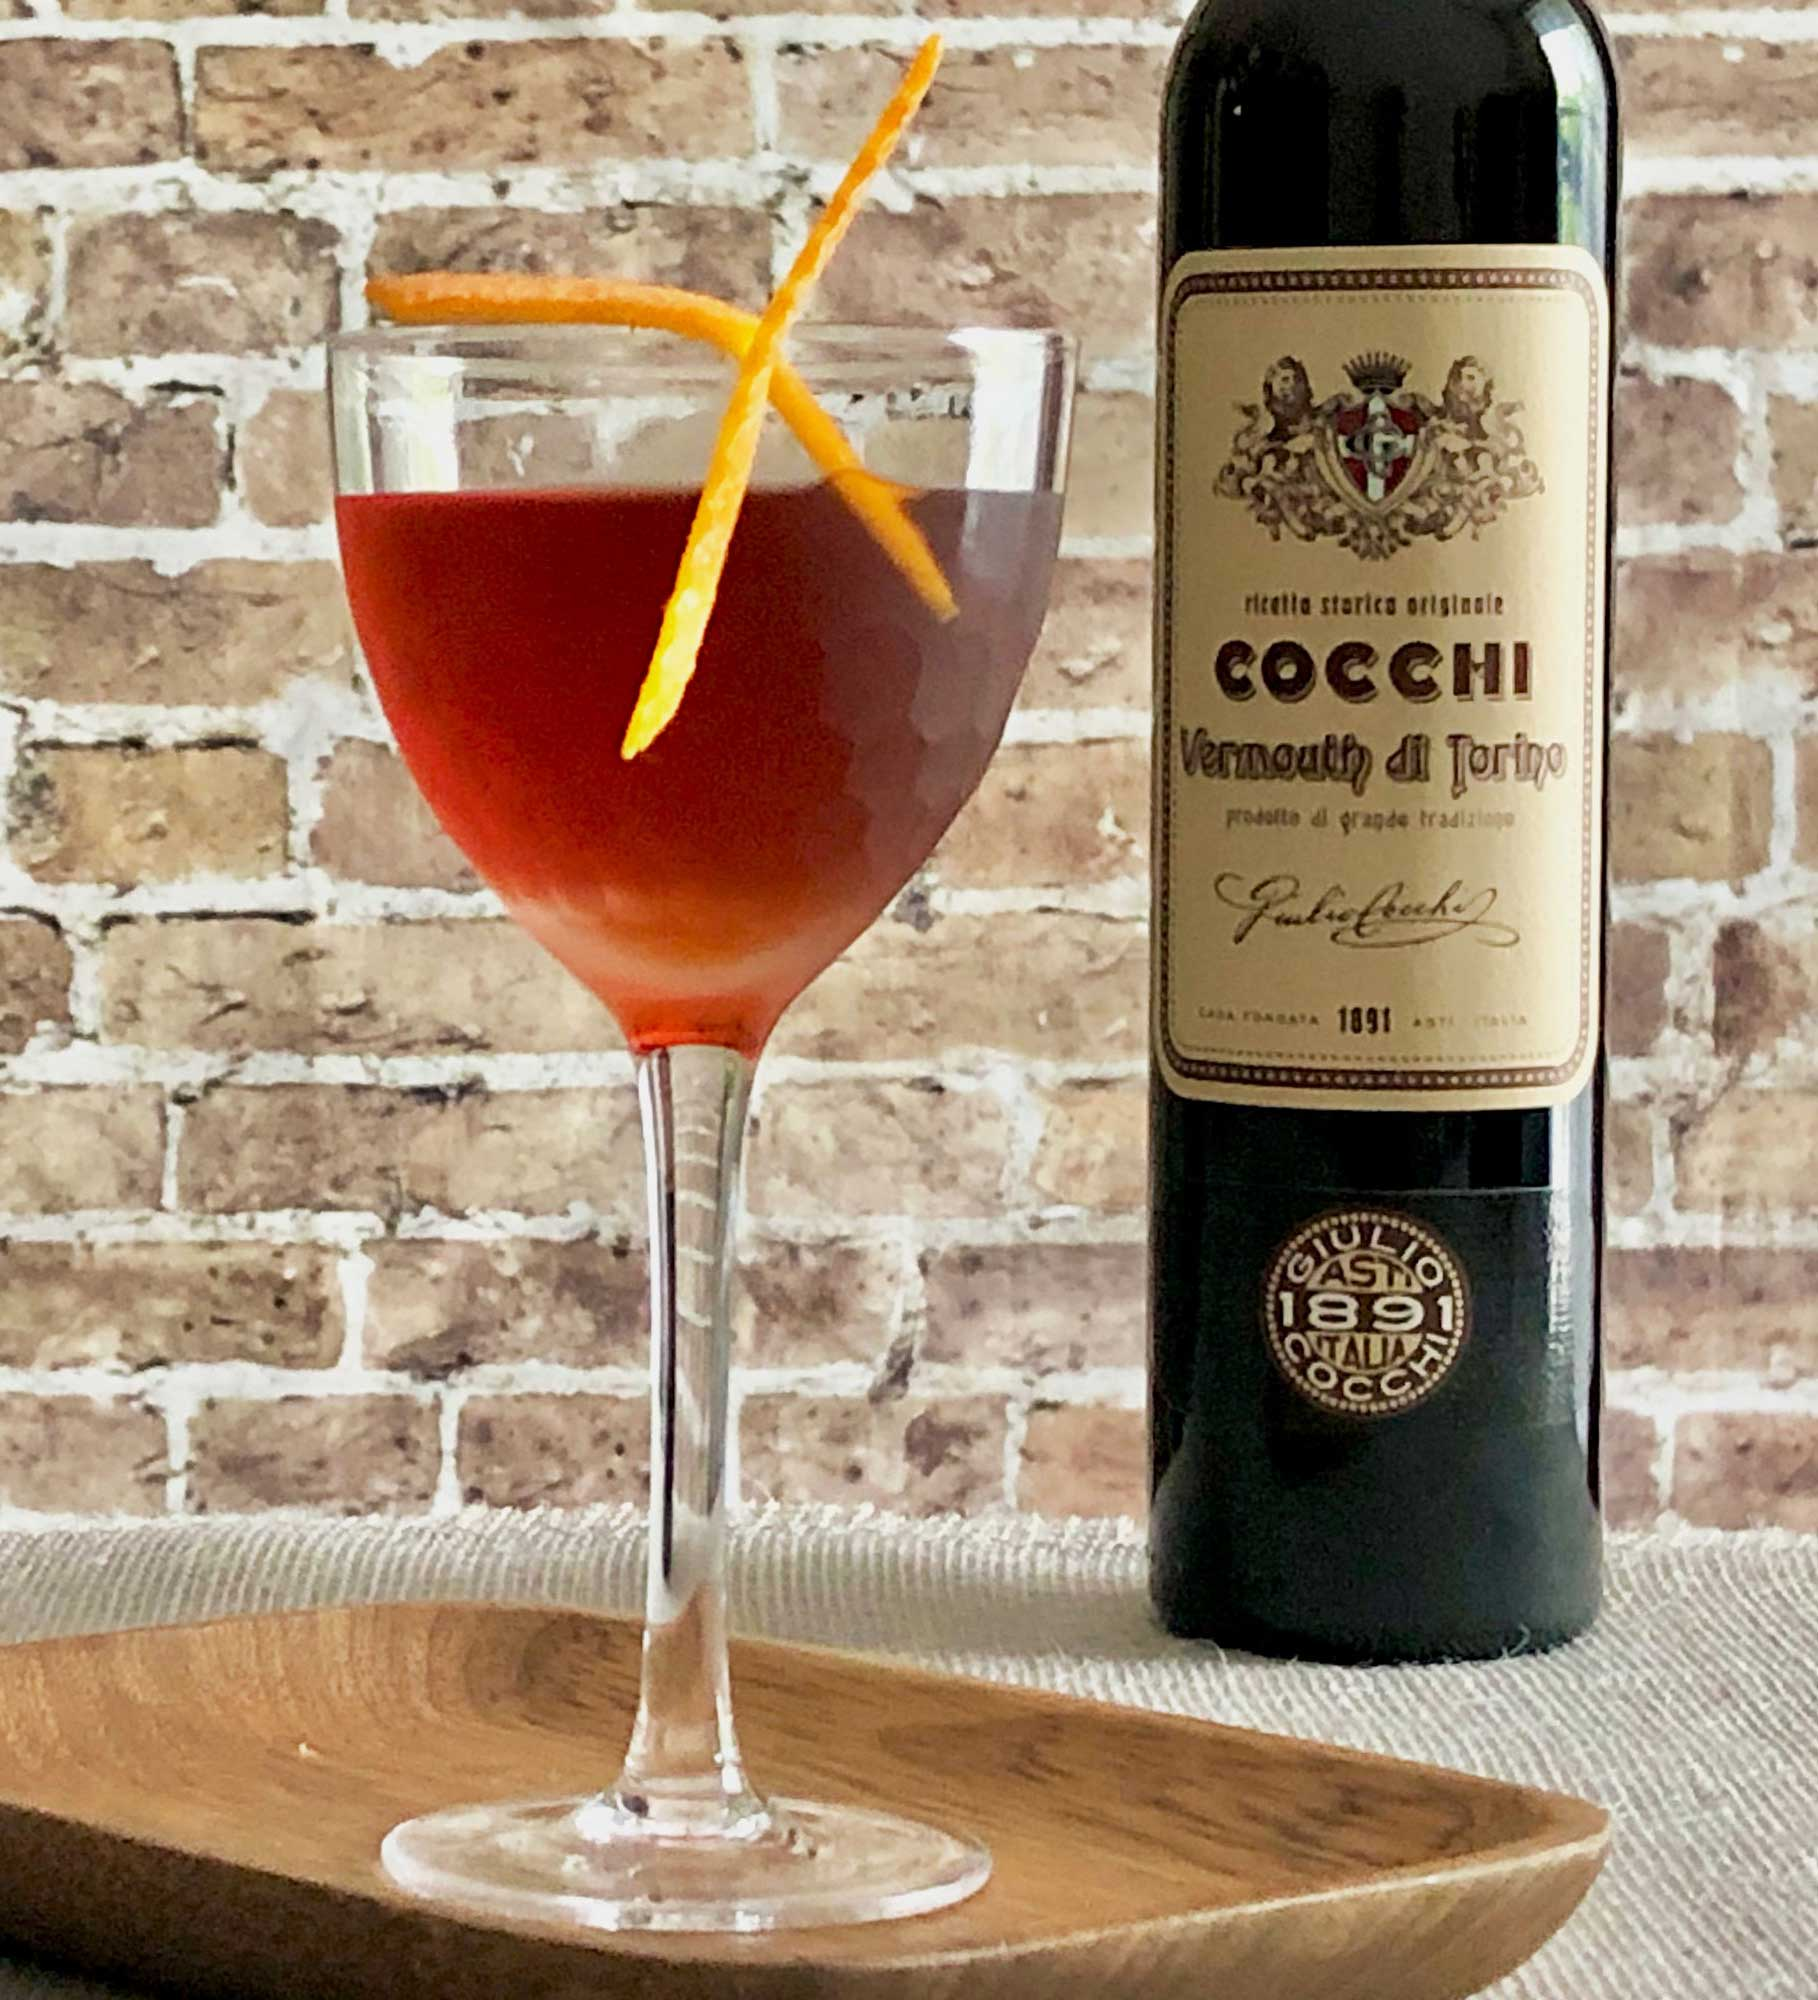 An example of the Golden Grove, the mixed drink (cocktail) featuring Cocchi Vermouth di Torino, Smith & Cross Traditional Jamaica Rum, maraschino liqueur, and orange bitters; photo by Lee Edwards